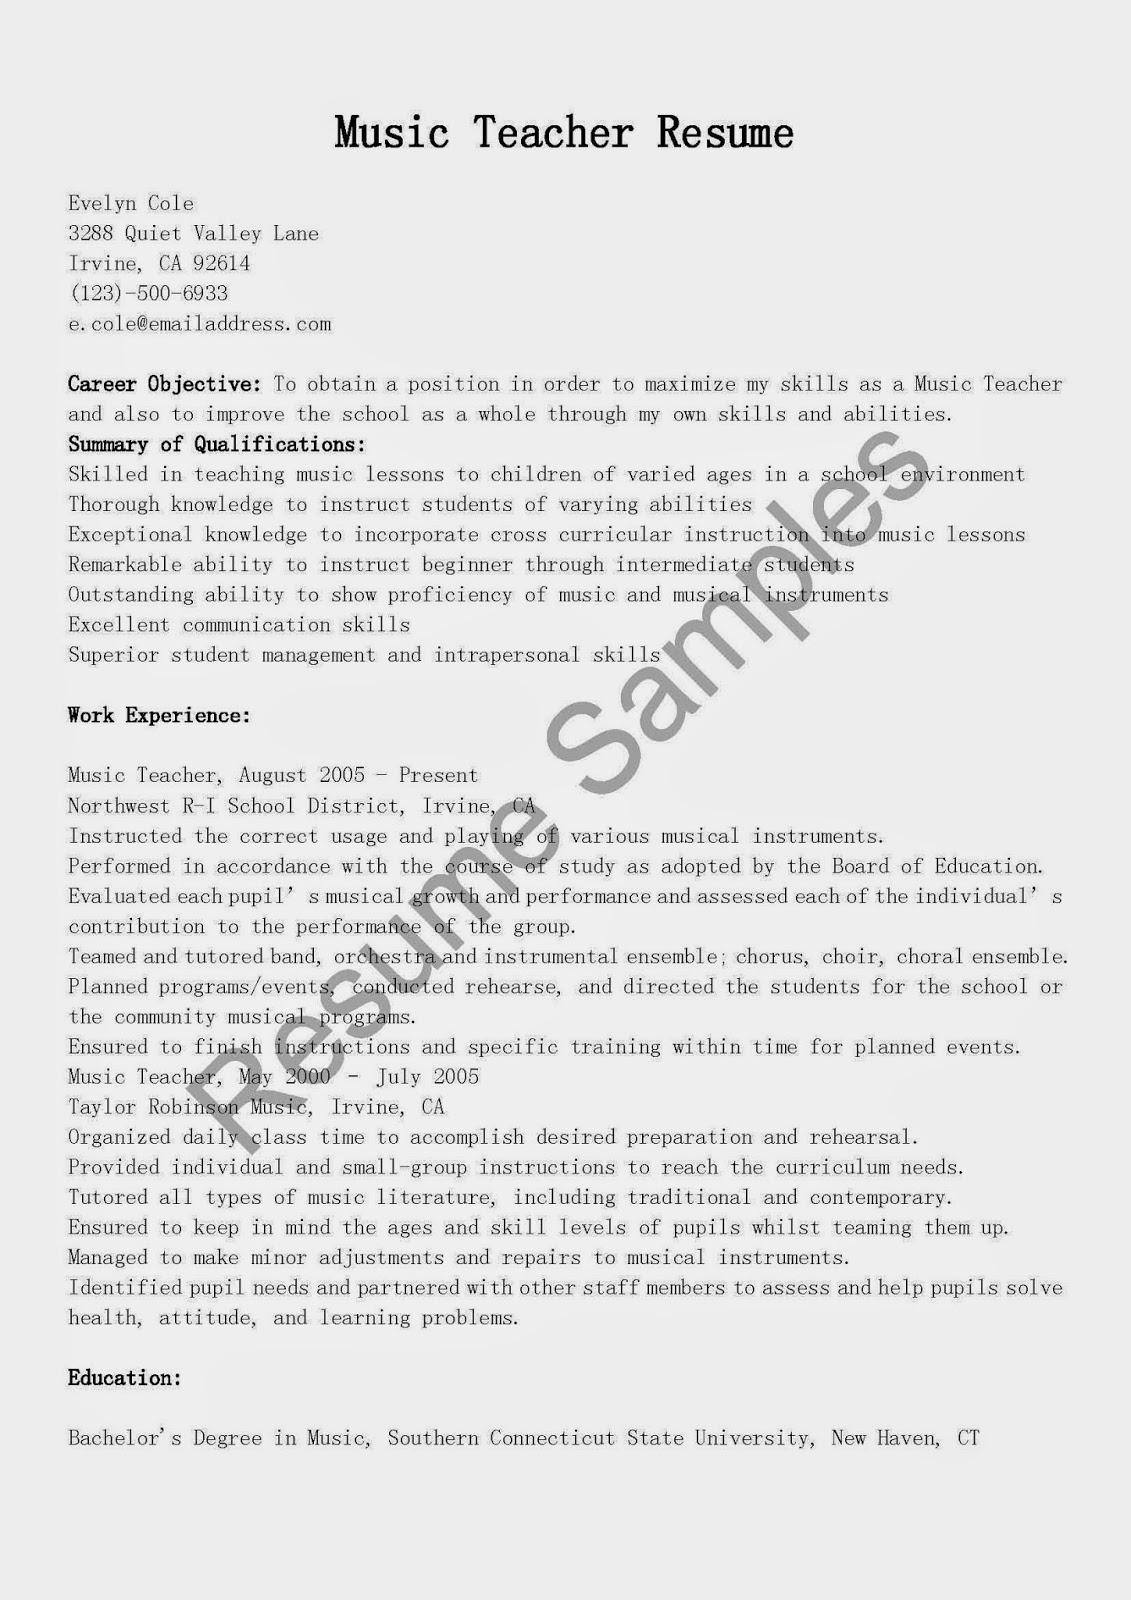 sample music resume resume samples music teacher sample free templates download entry level template